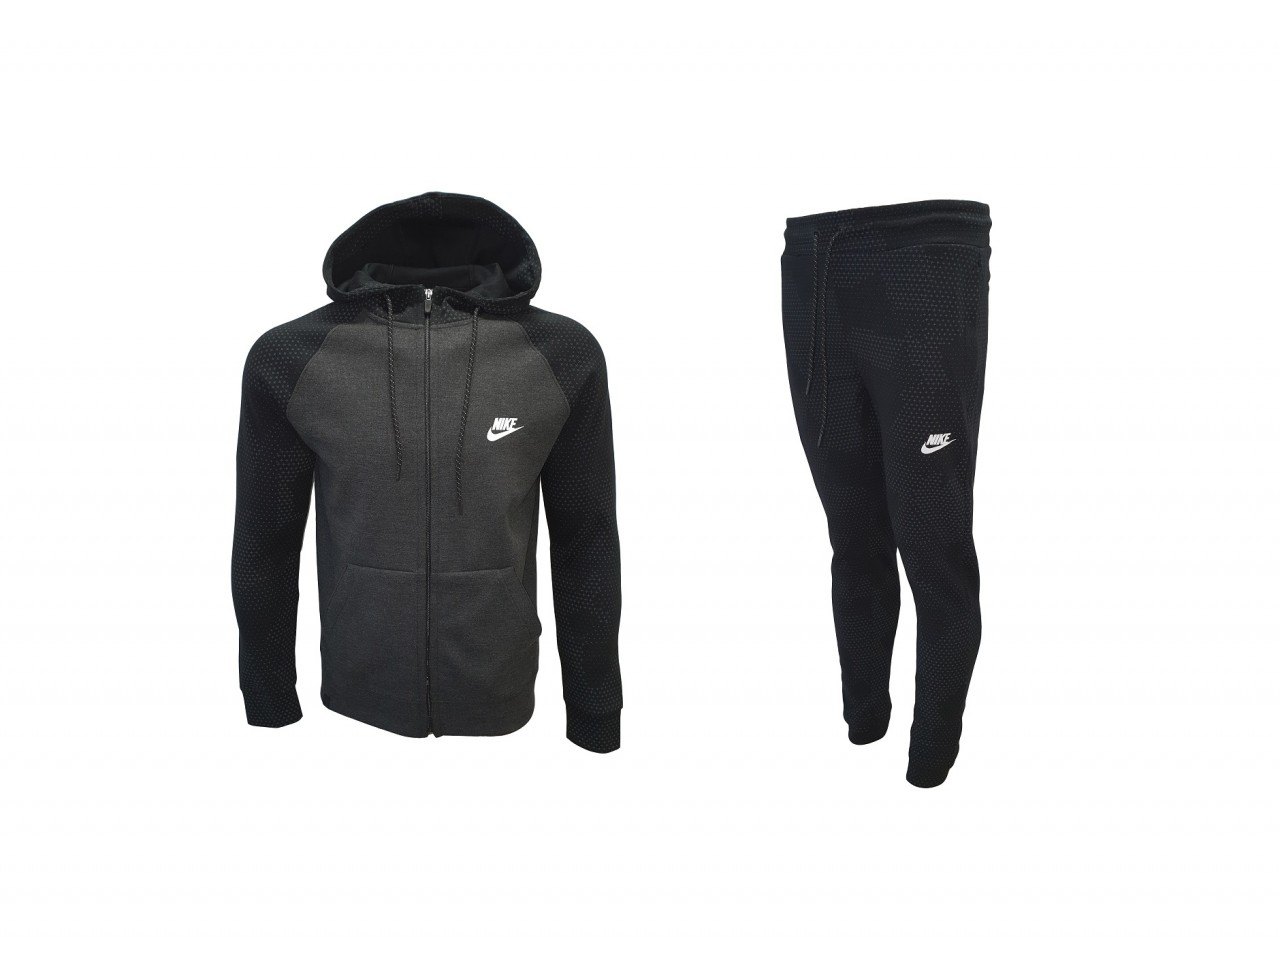 Nike Tracksuit Top Model Dark Grey Black